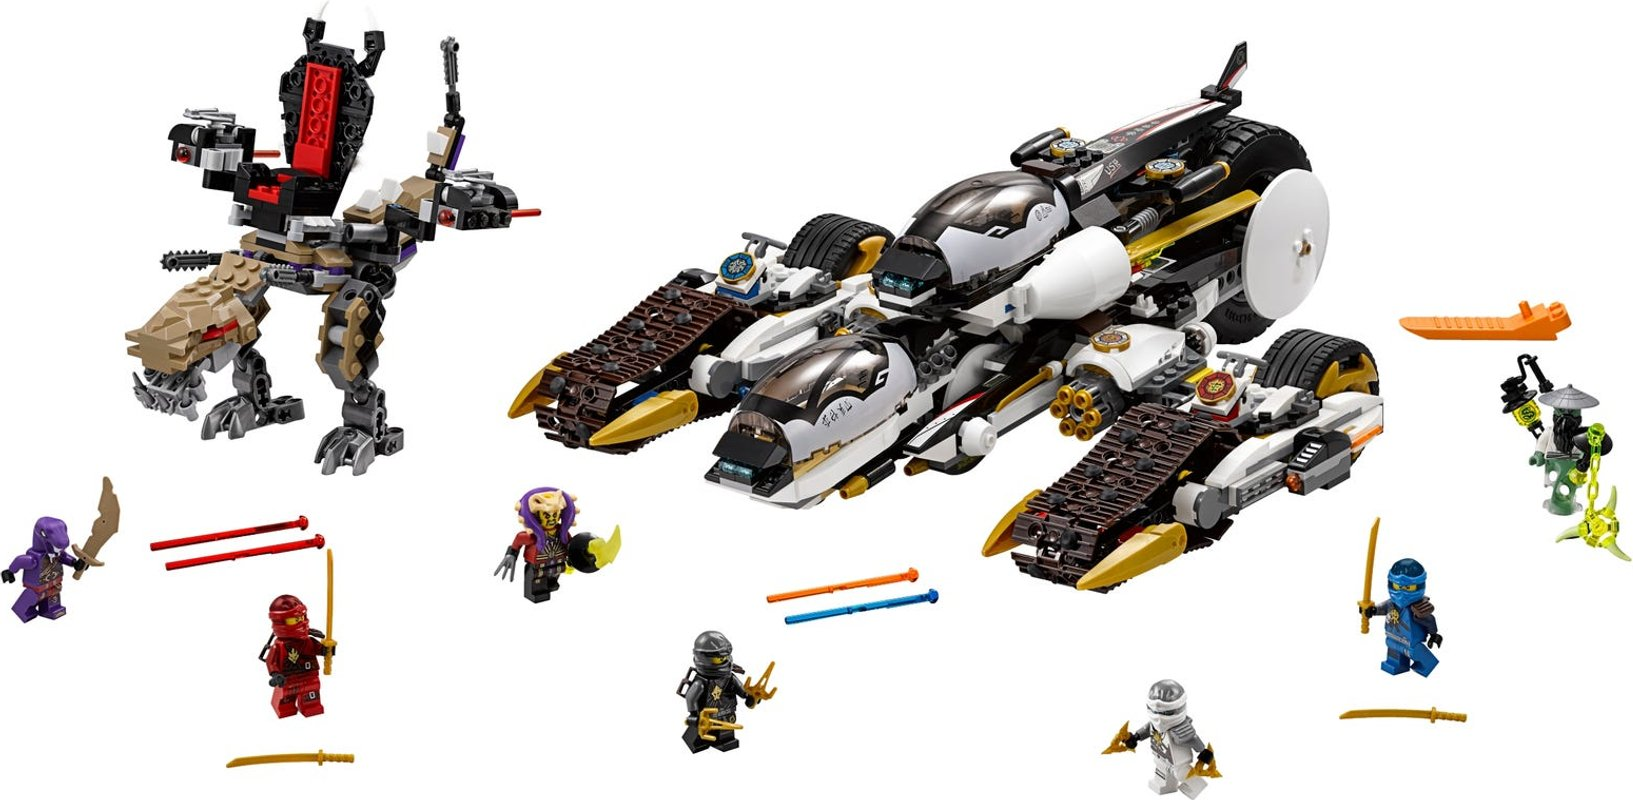 Ultra Stealth Raider components